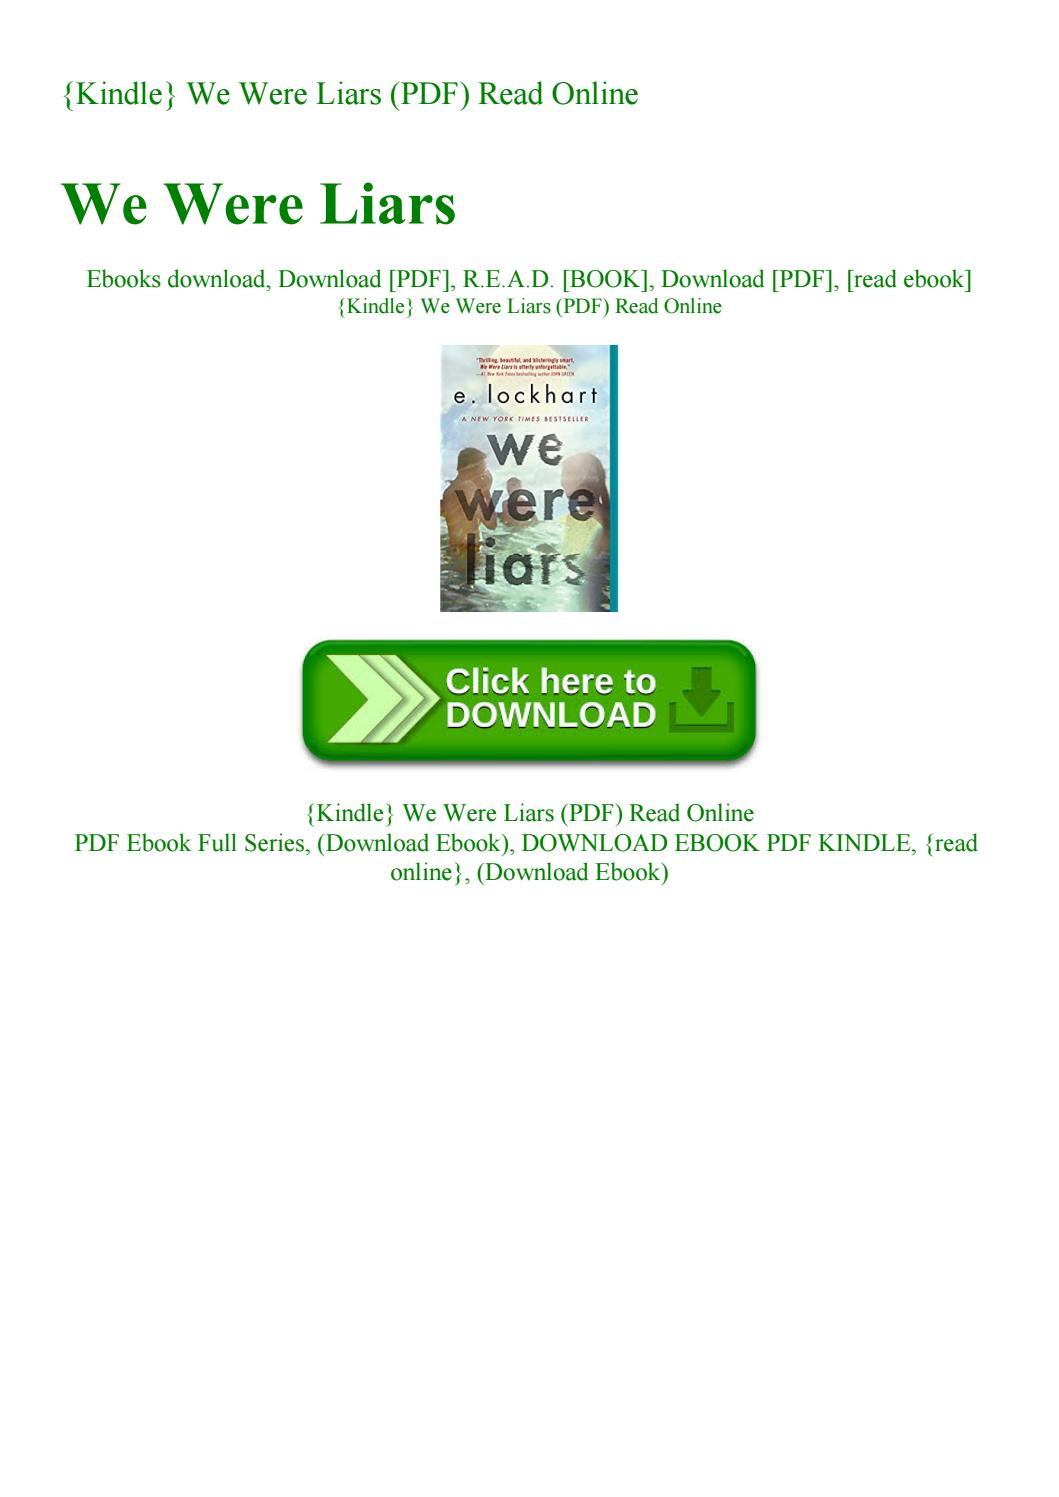 We Were Liars Pdf